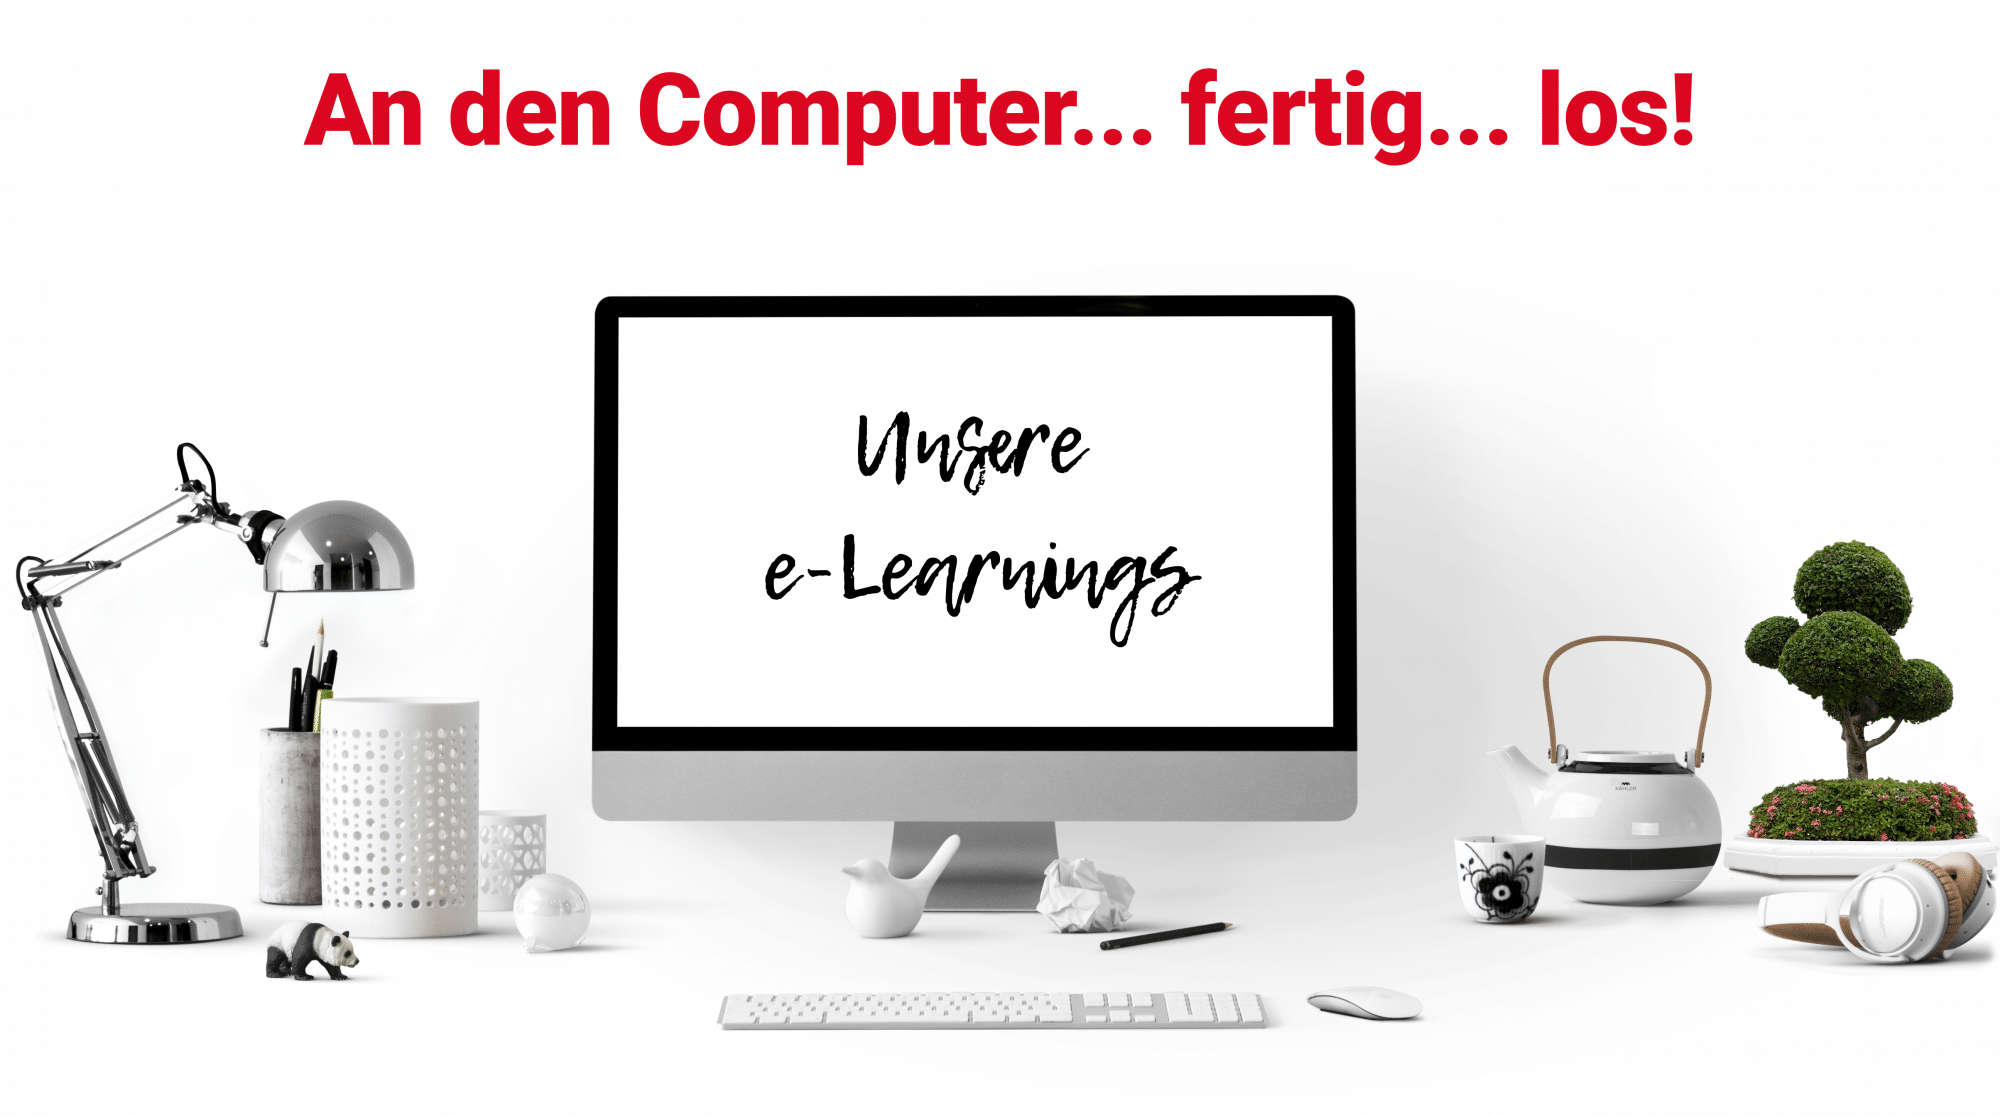 e-Learnings: An den Computer, fertig, los